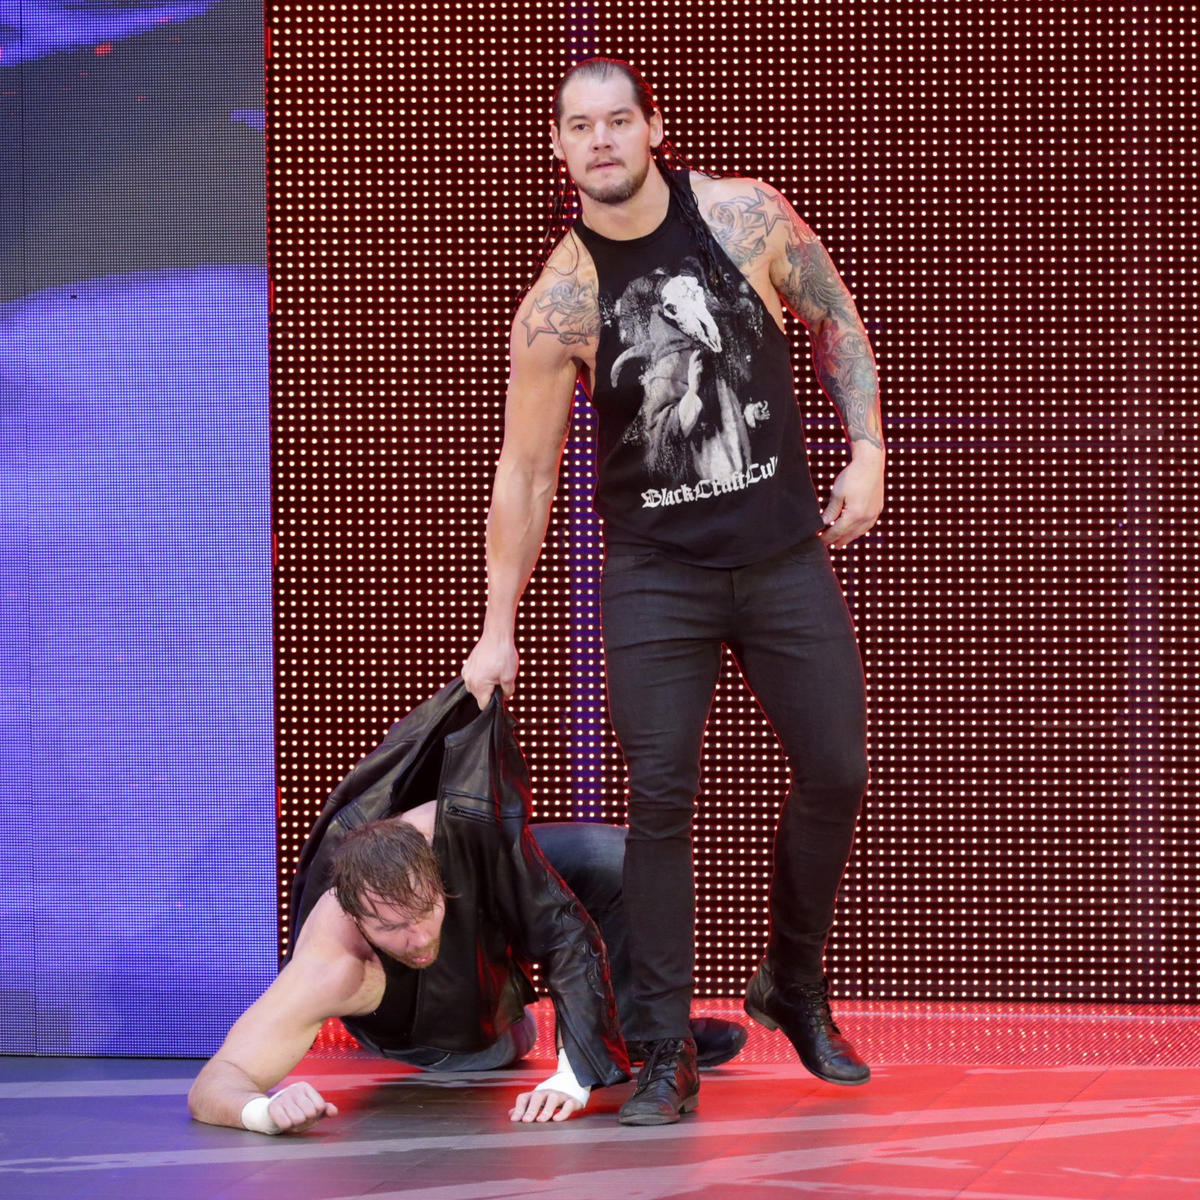 Baron Corbin drags Ambrose out onto the stage.